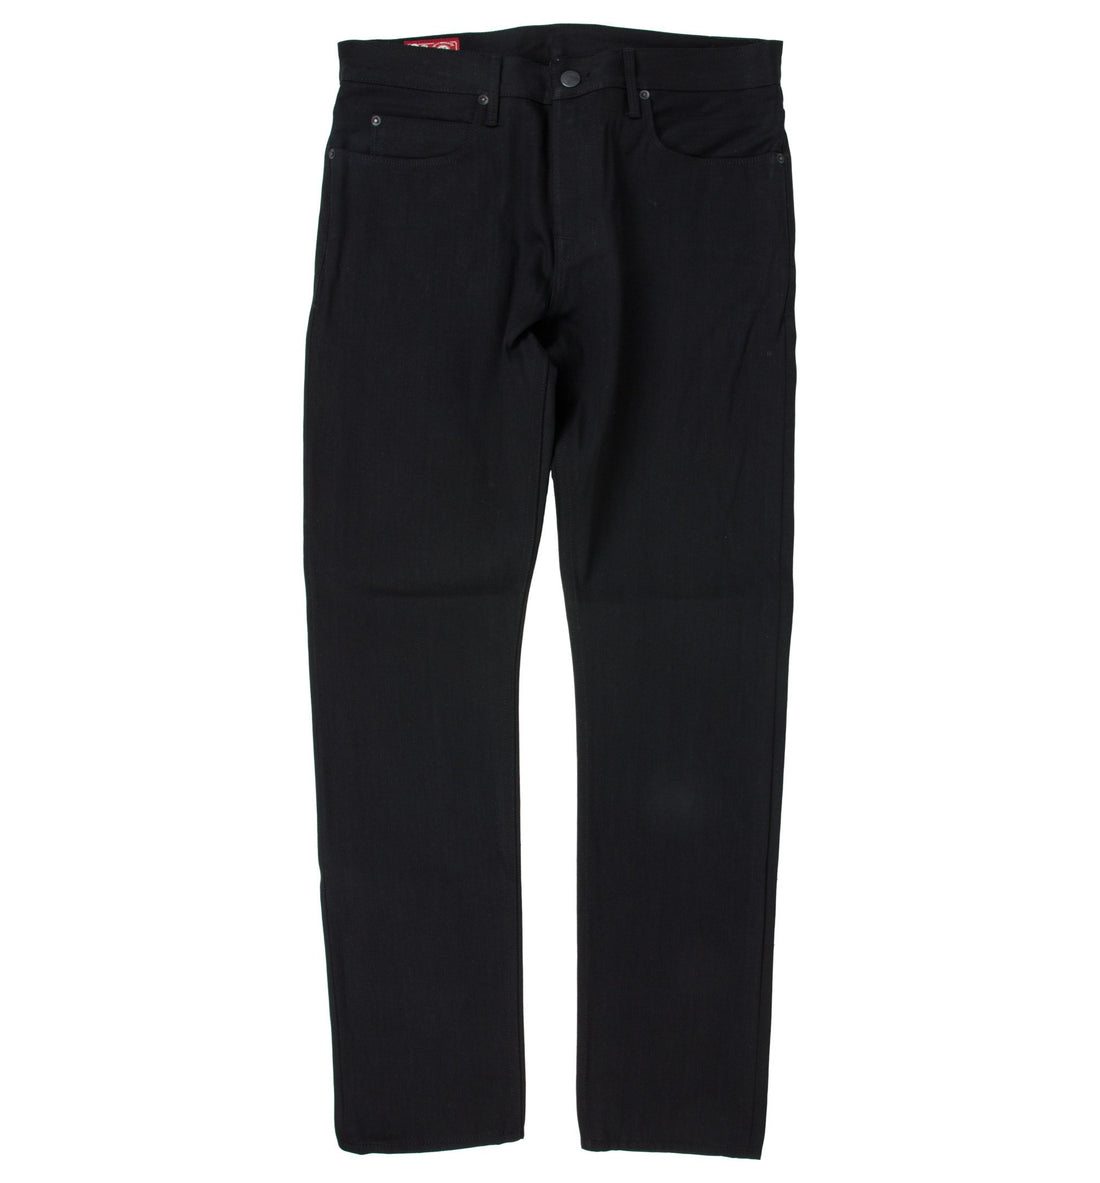 FREENOTE Rios, Slim Straight - Apparel: Men's: Pants - Iron and Resin